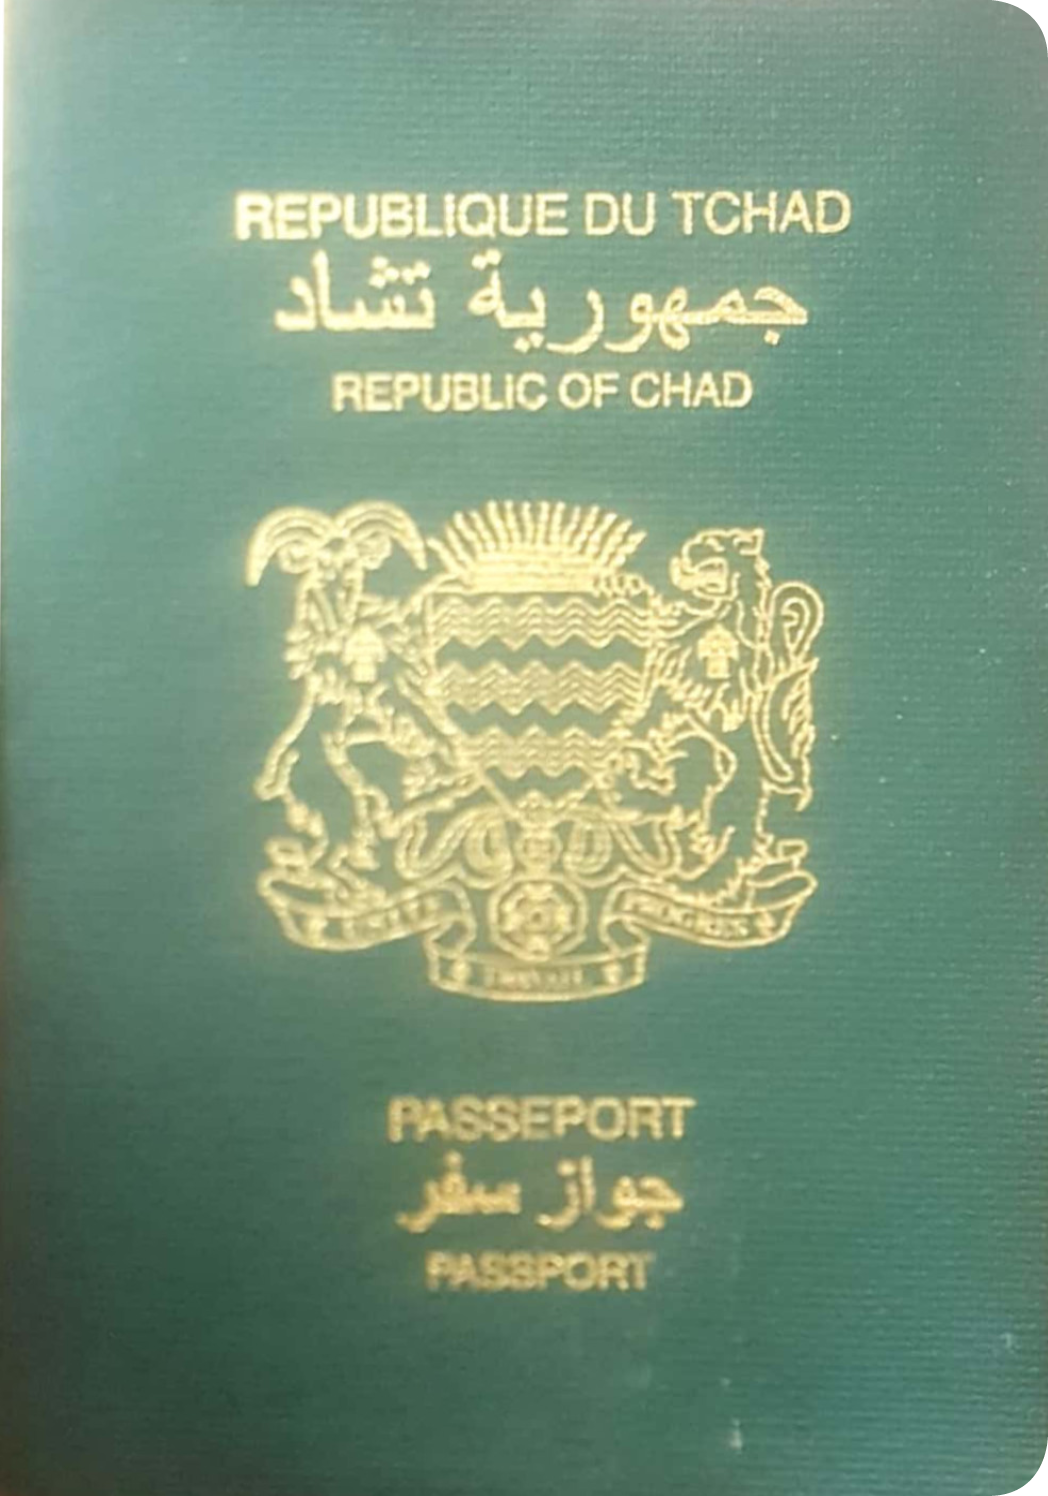 A regular or ordinary Chadian passport - Front side